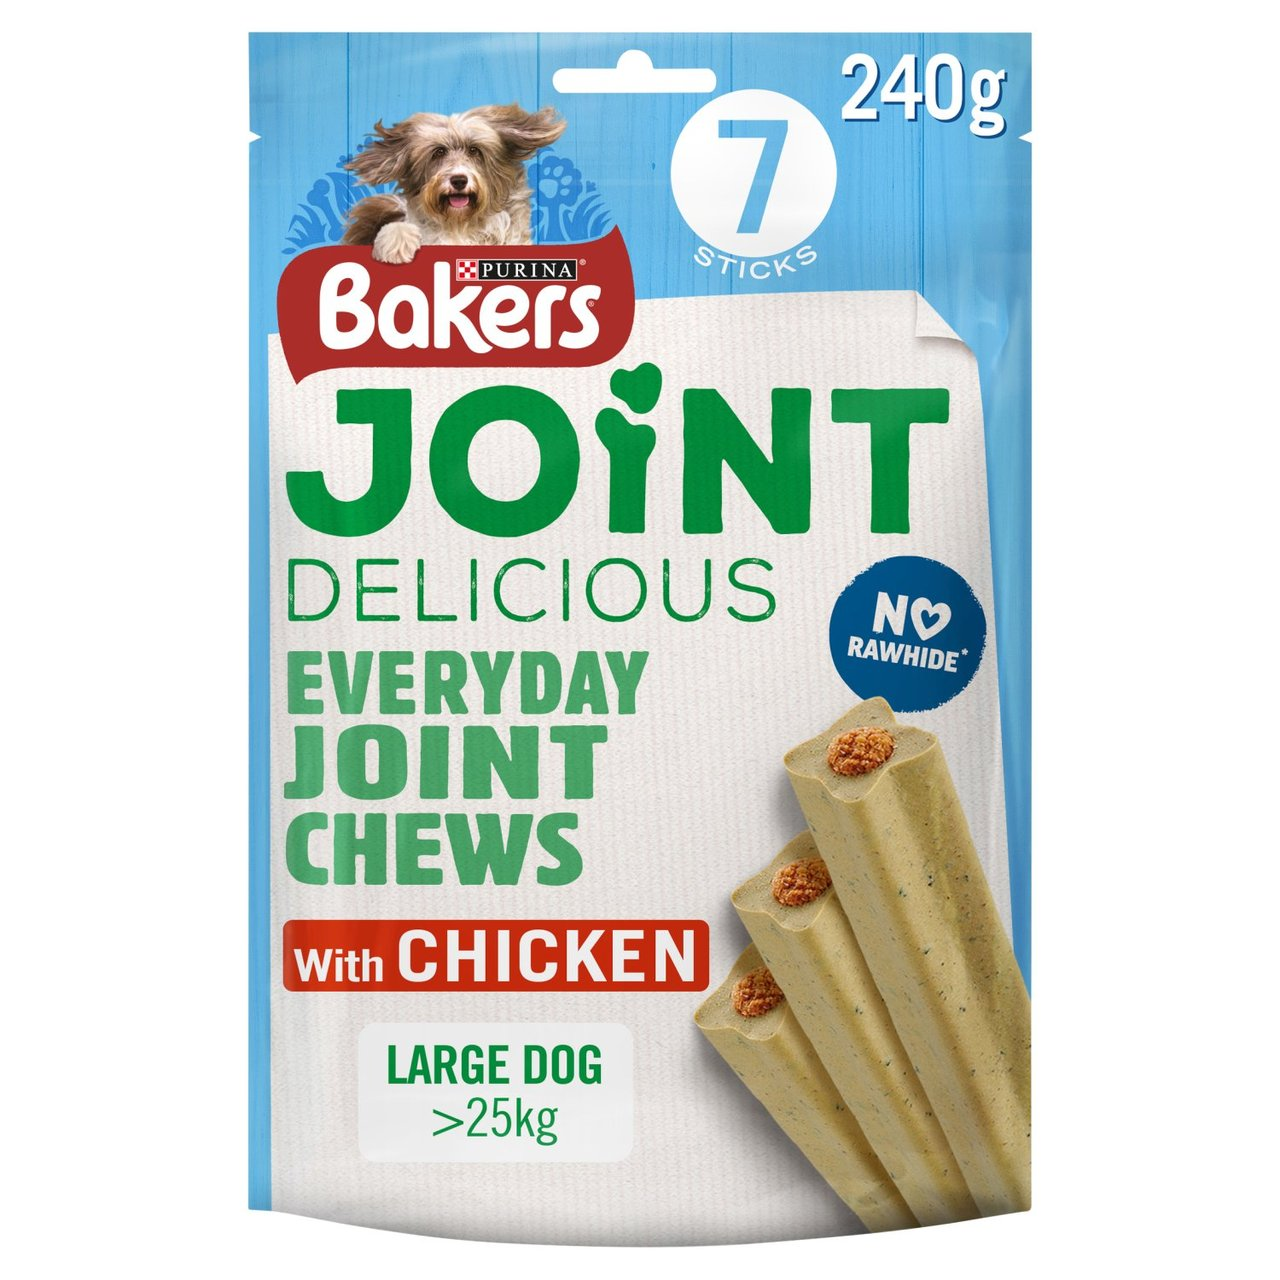 An image of Bakers Joint Delicious Large Dog Treats Chicken